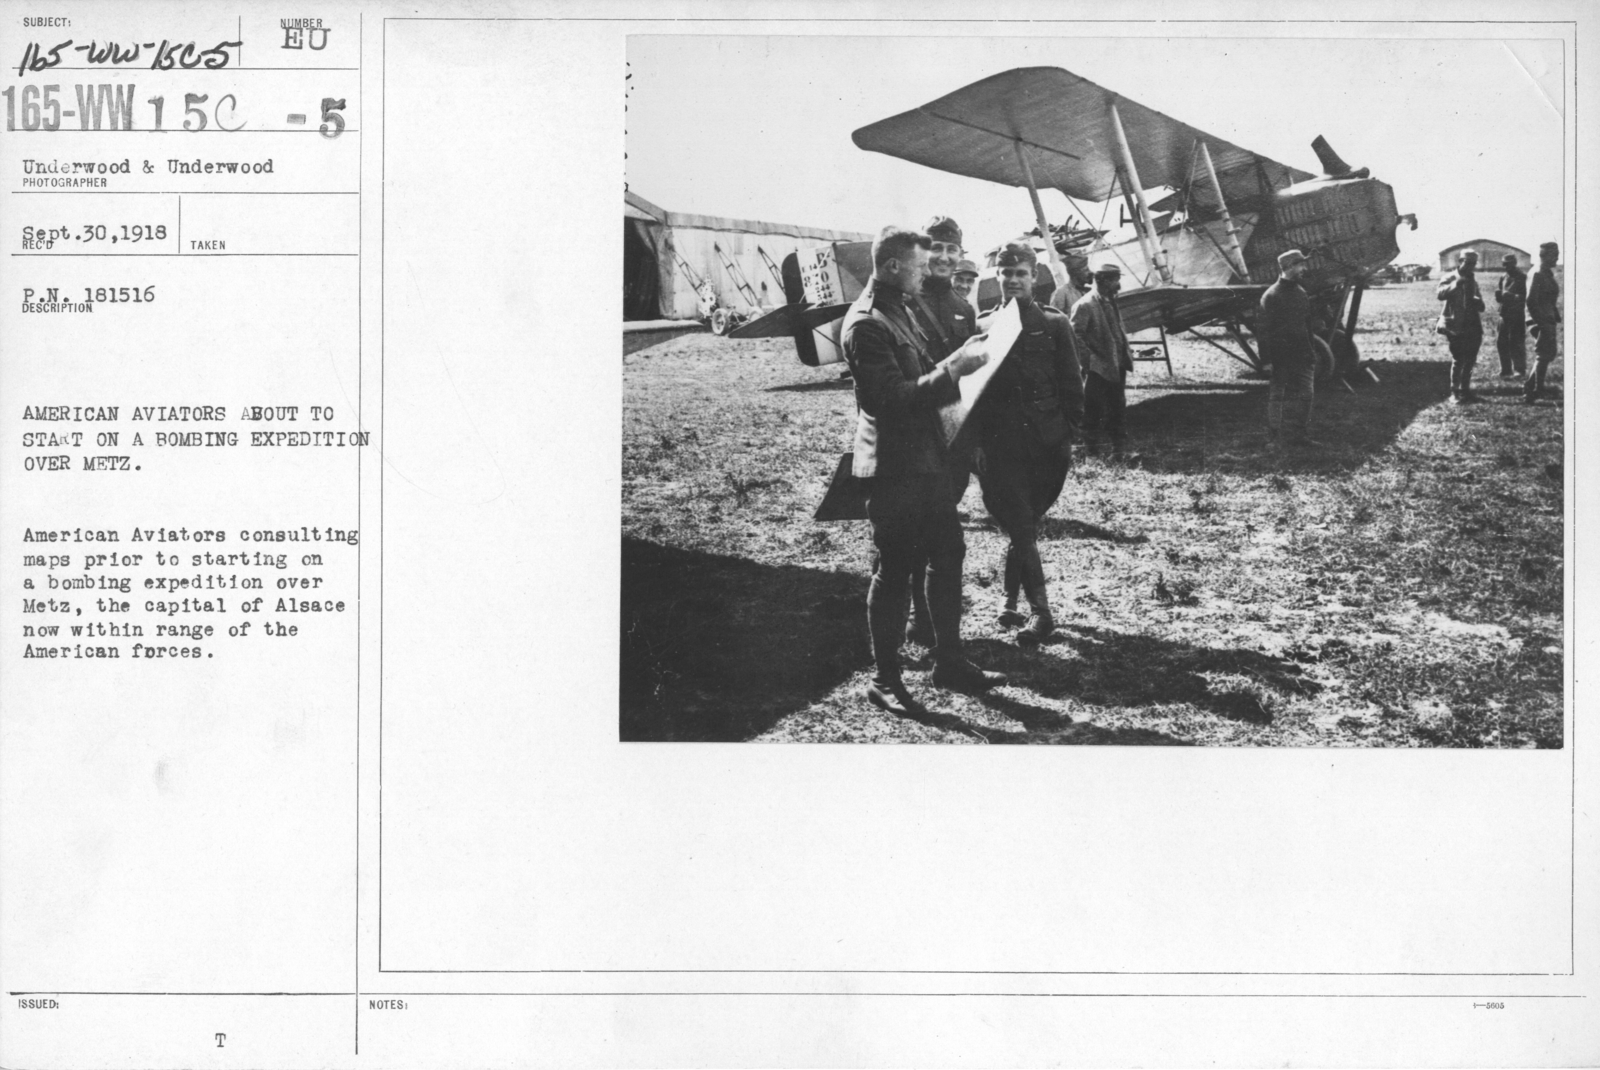 Airplanes - Operations - American Aviators about to start on a bombing expedition over Metz. American Aviators consulting maps prior to starting on a bombing expedition over Metz, the capital of Alsace now within range of the American forces